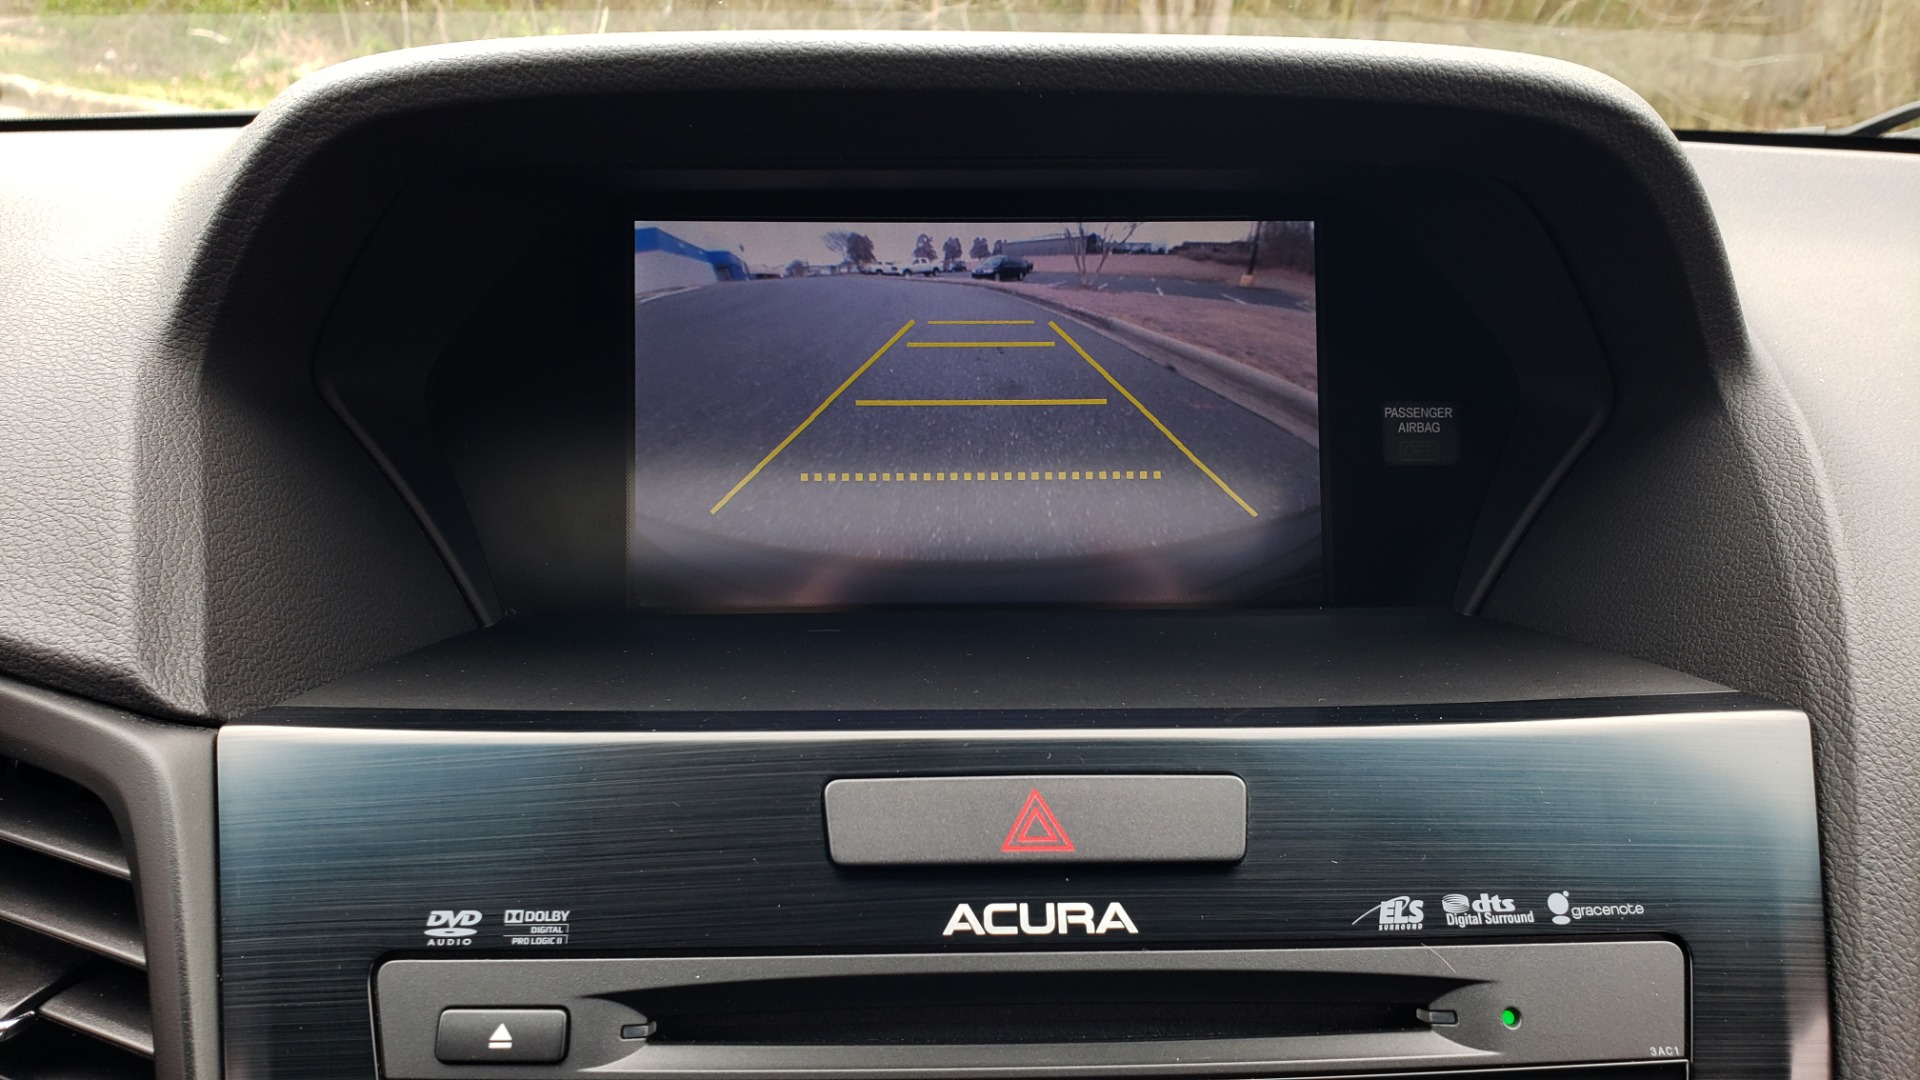 Used 2013 Acura ILX TECH PKG / SUNROOF / NAV / DUAL-ZONE A/C / REARVIEW for sale Sold at Formula Imports in Charlotte NC 28227 41